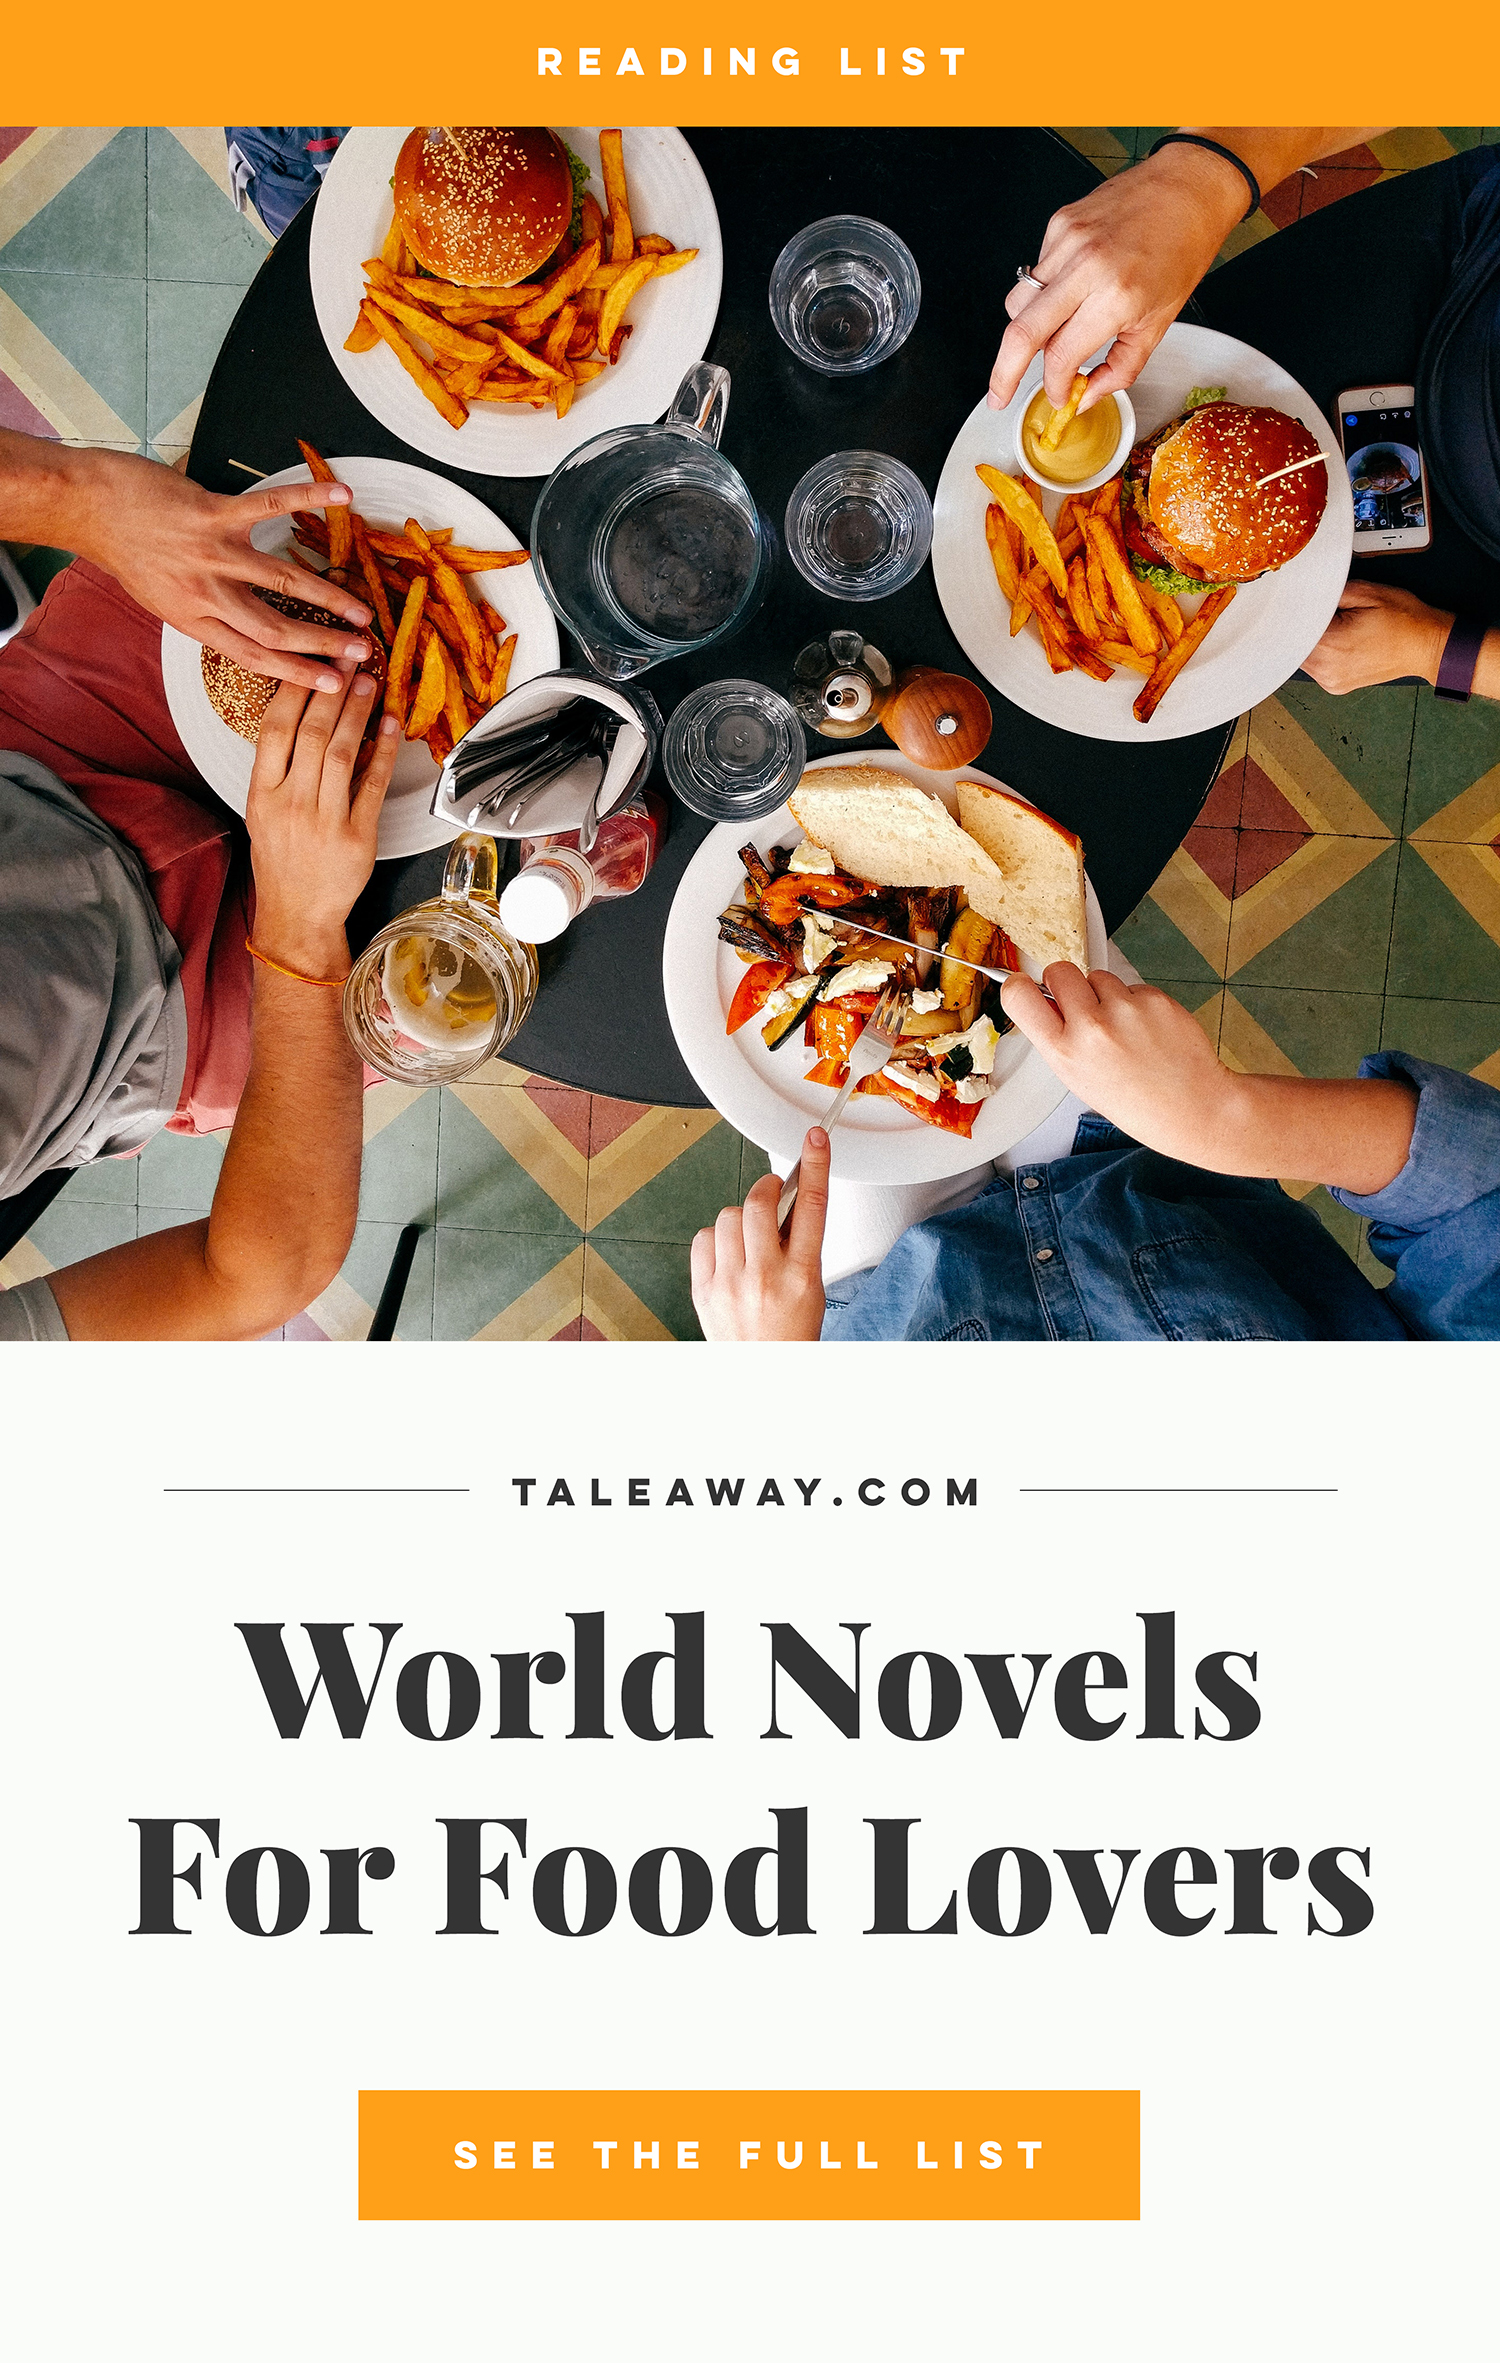 Food Novels: Books for Food Lovers from Around The World. food novels, food fiction, best food books, books with food, novels about food, books for food lovers, world food books, world food novels, food in literature, books for foodies, novels for foodies, food literature, food in world literature, food lit, gifts for foodies, gifts for food lovers, travel food books, travel and food, book club food, food lovers book, good food book, novel food list, comfort food novel, chef novel, fictional food, international novels about food, food and book, food themed books, best food fiction, novels from around the world